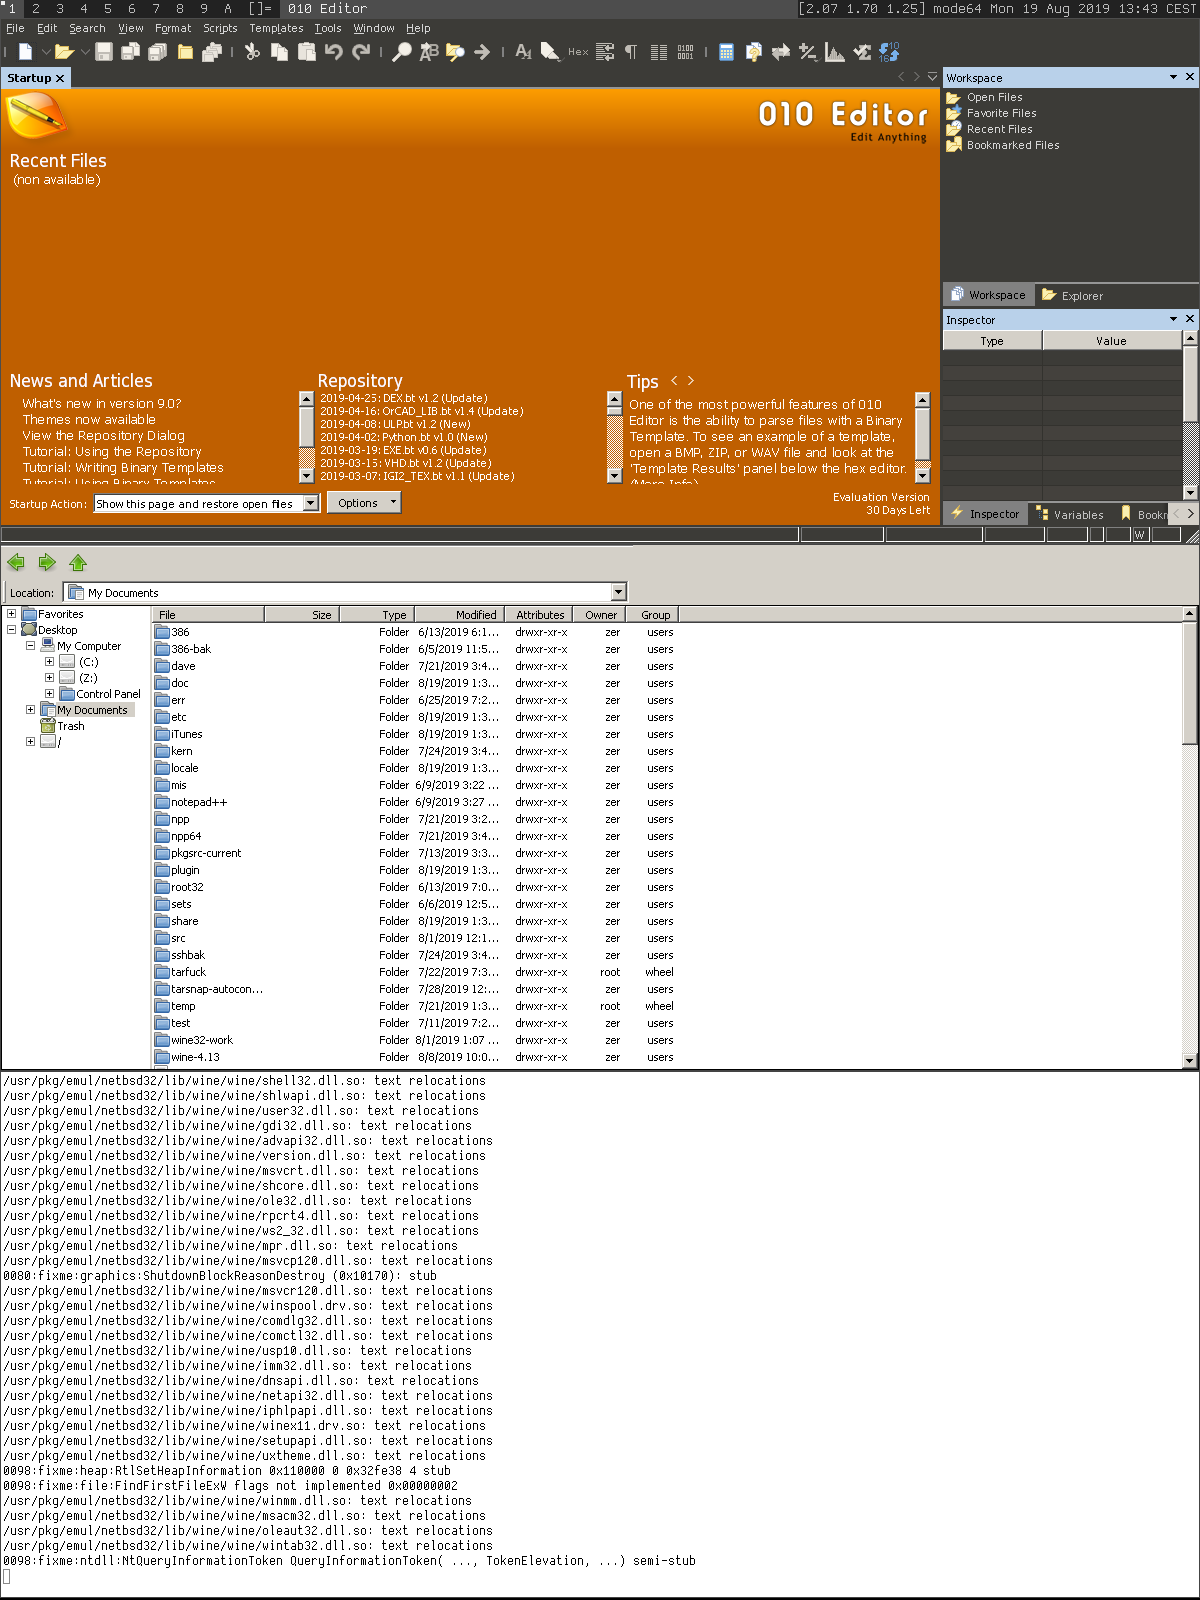 010 Editor (Professional Text/Hex Editor) on Wine-4.13 (amd64)